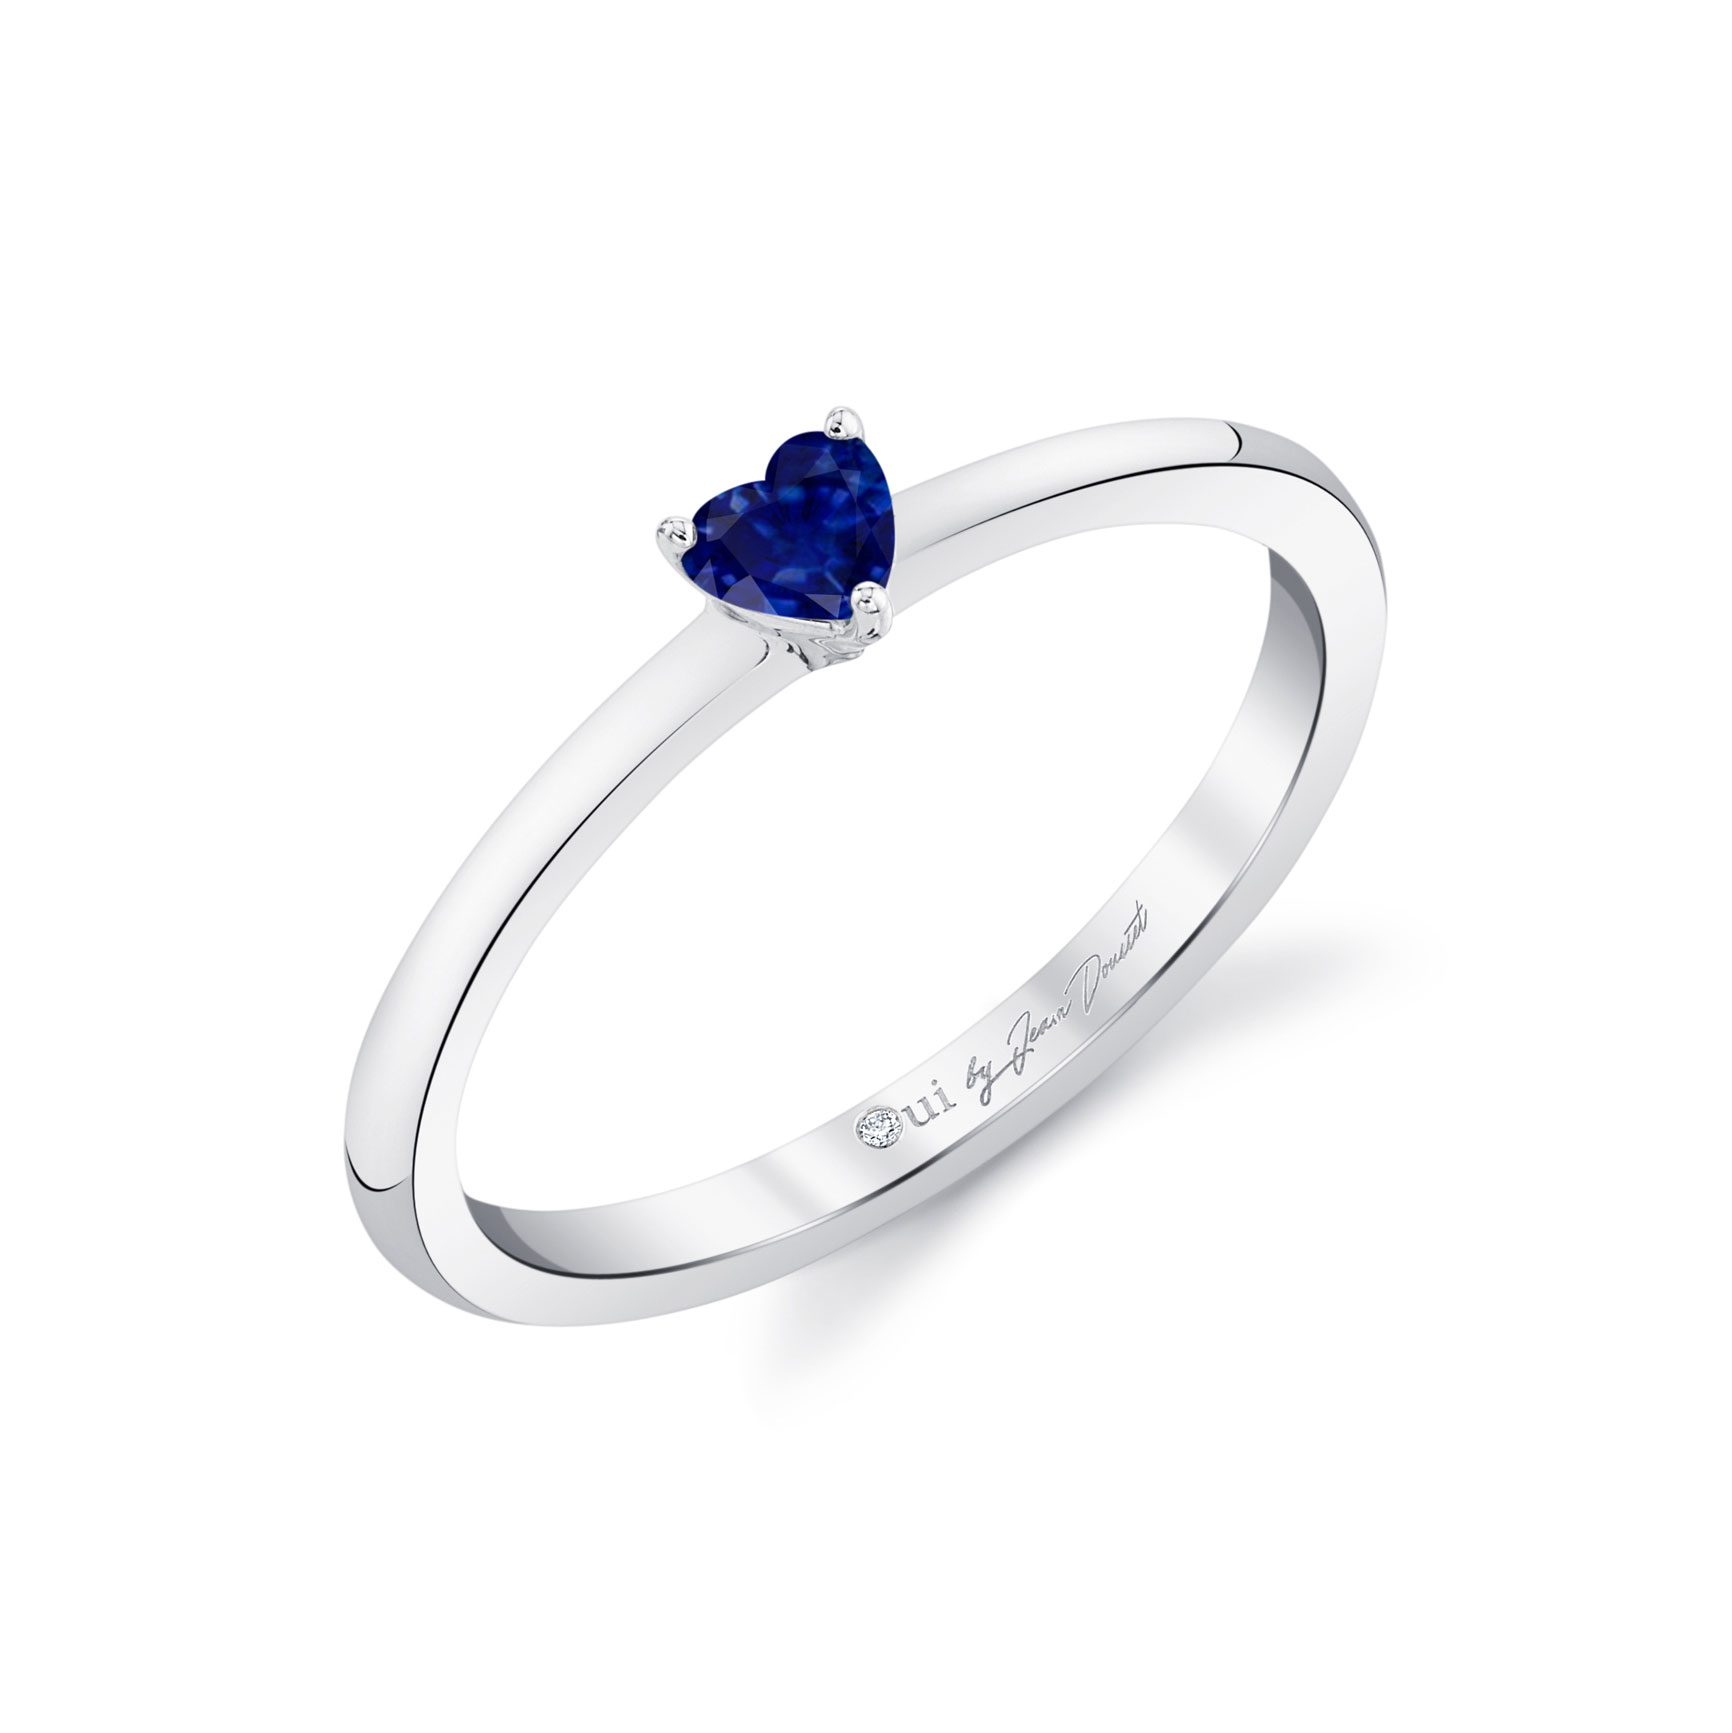 La Petite Heart Blue Sapphire Ring in 18k White Gold Profile View by Oui by Jean Dousset